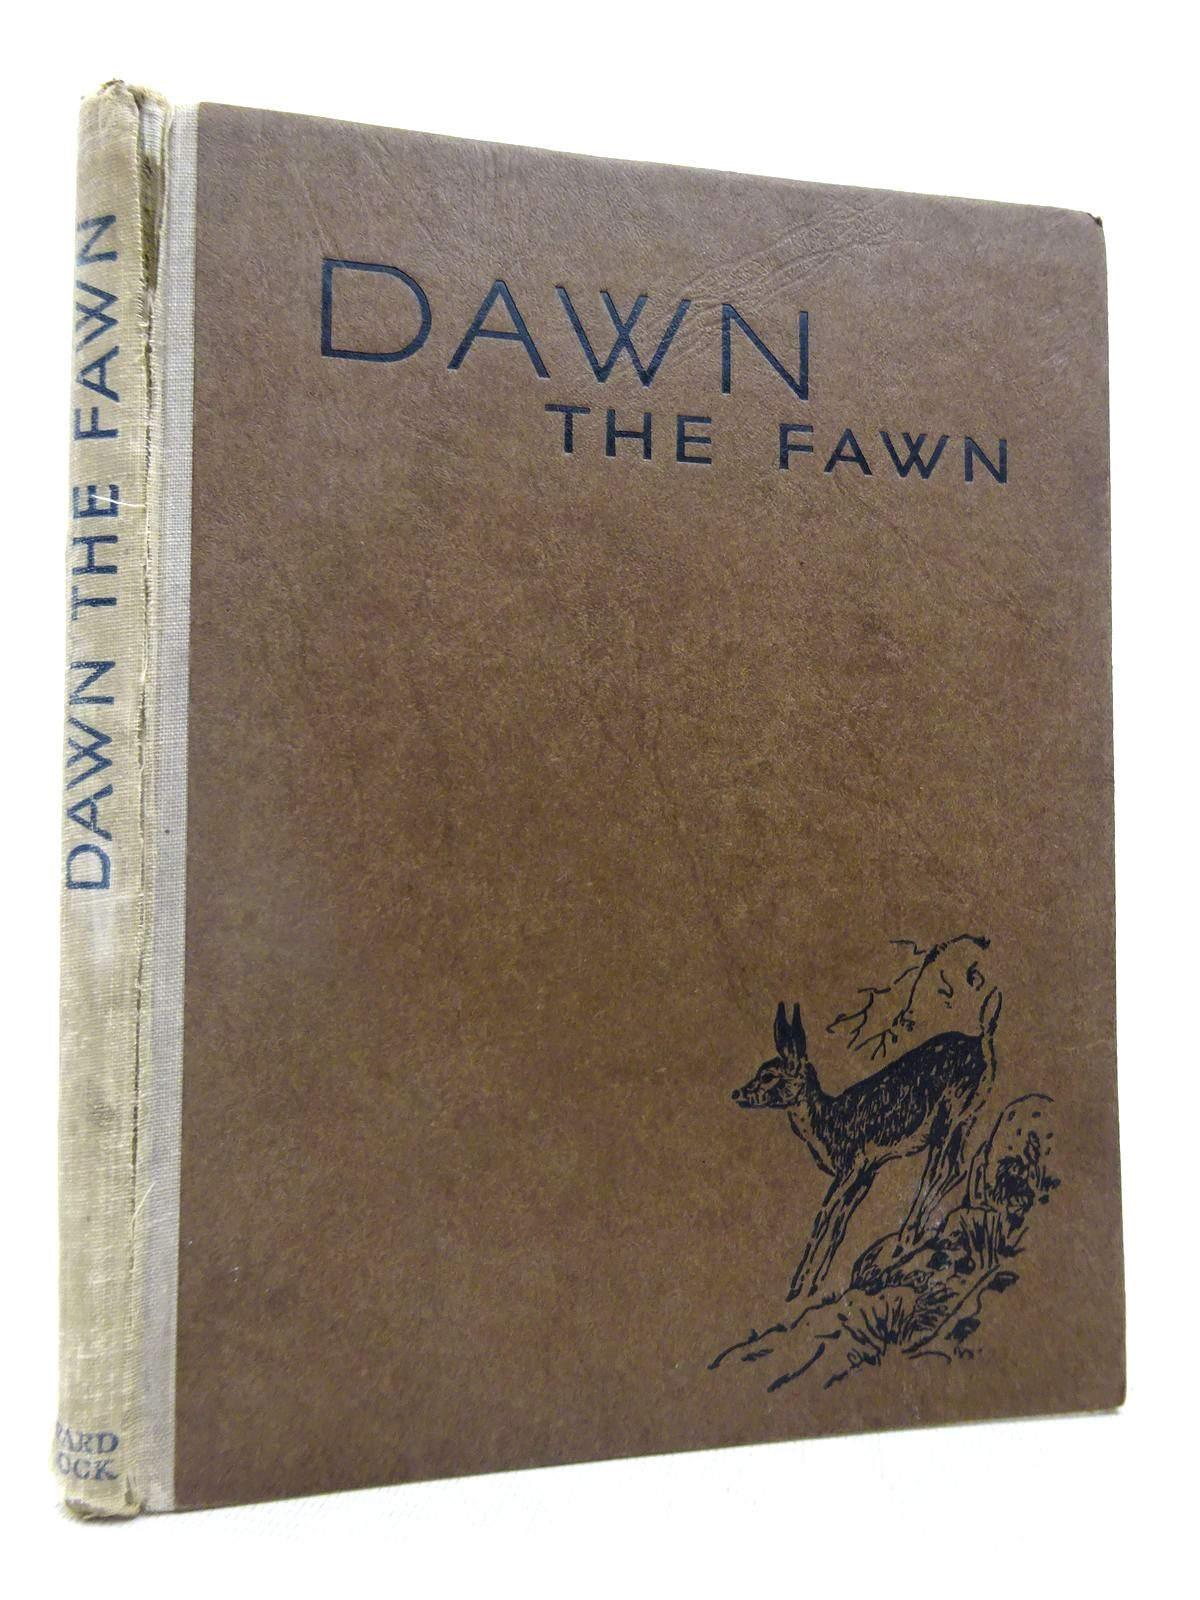 Photo of DAWN THE FAWN written by Thornicroft, Jane illustrated by Aris, Ernest A. published by Ward, Lock & Co. Limited (STOCK CODE: 1816522)  for sale by Stella & Rose's Books